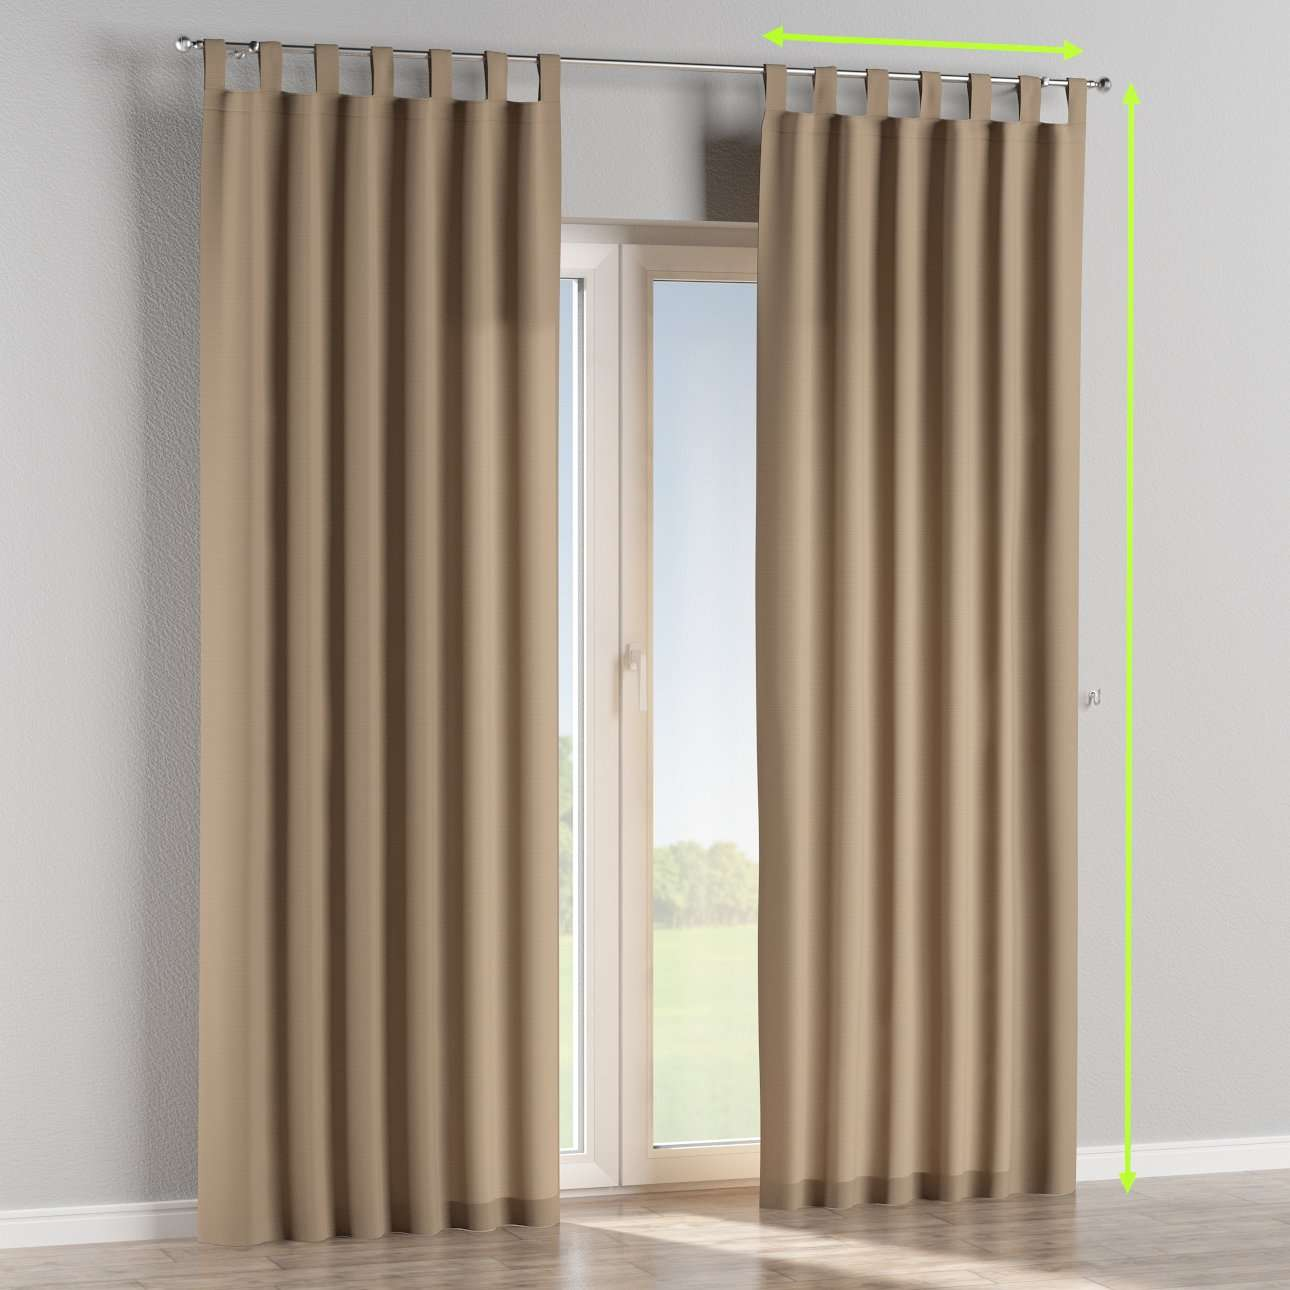 Tab top curtains in collection Cotton Panama, fabric: 702-28